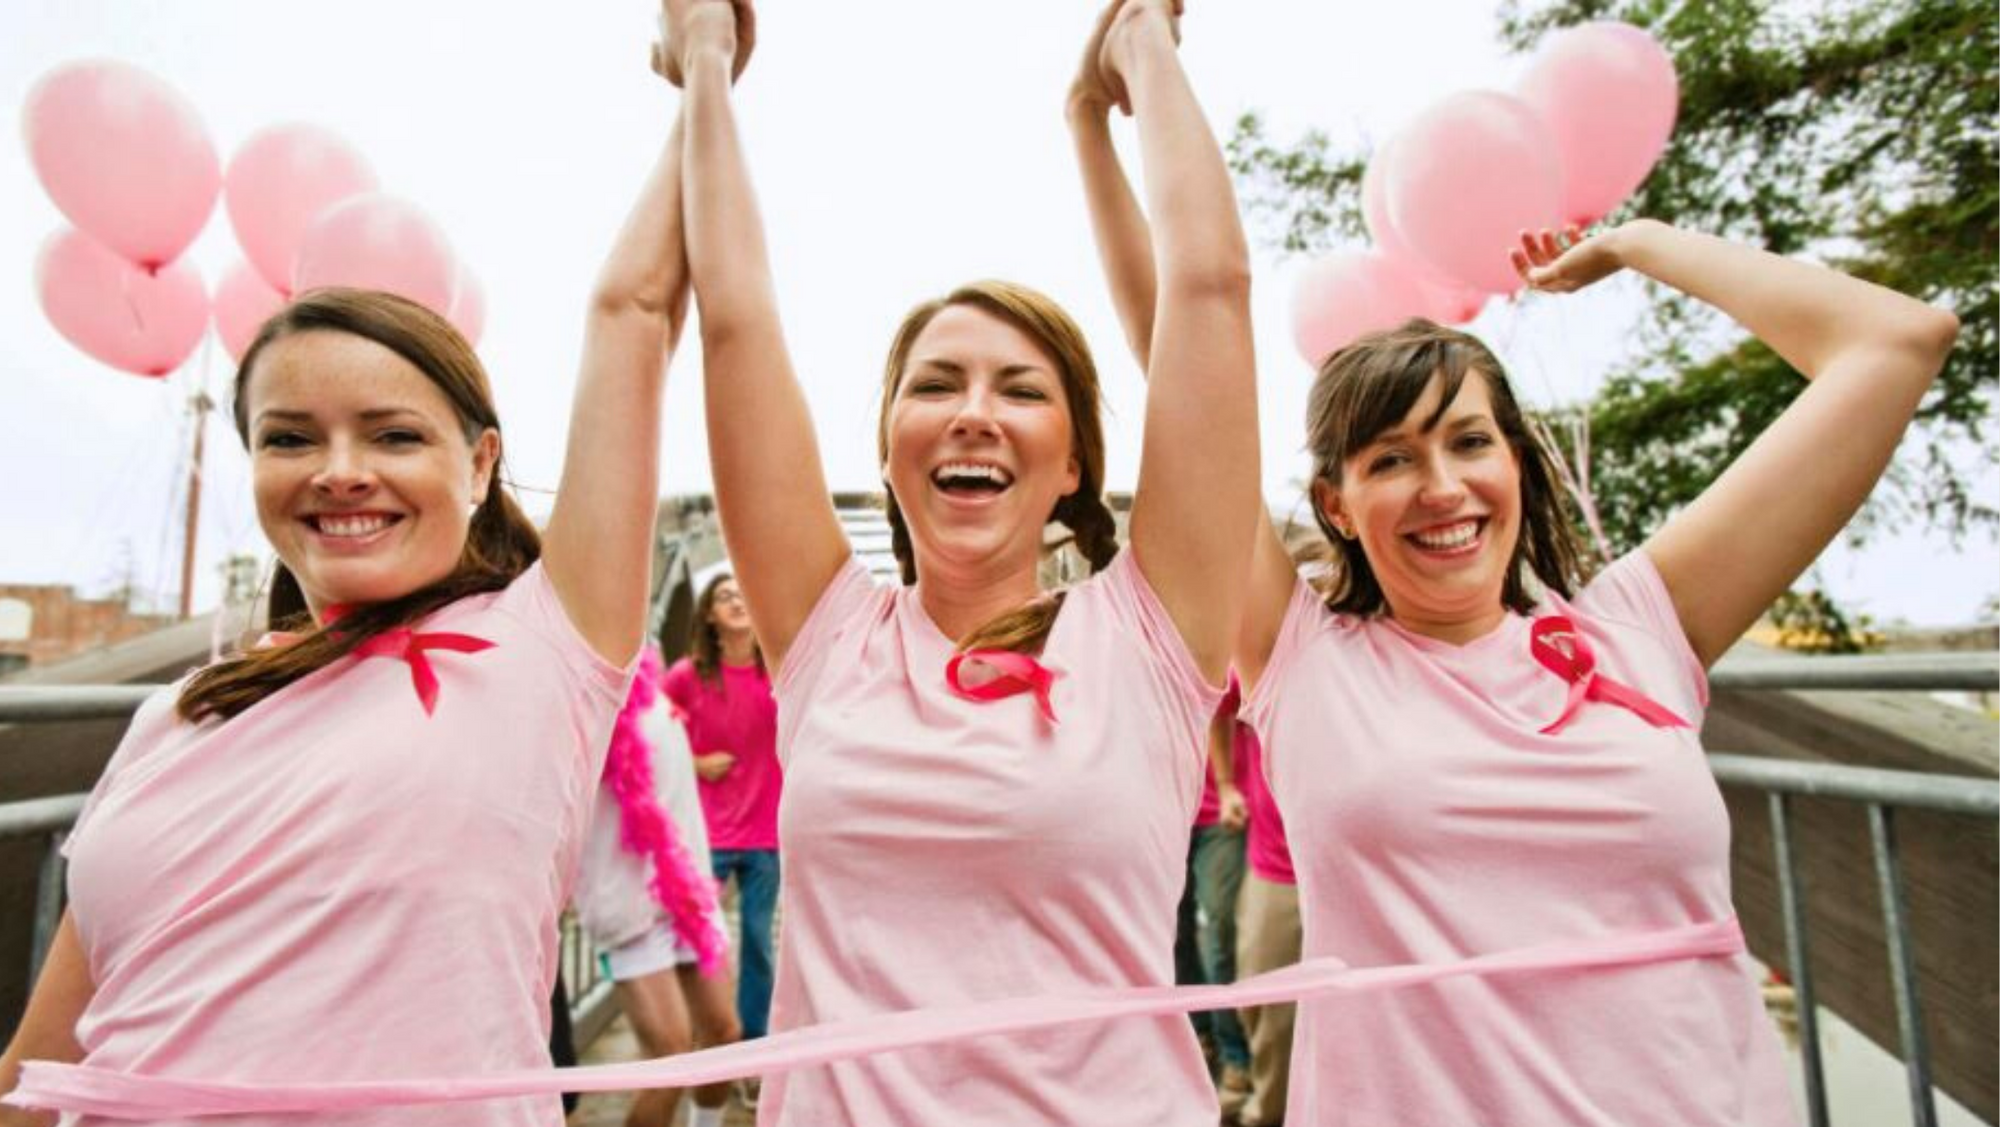 Fight Breast Cancer, Join the Army of Women